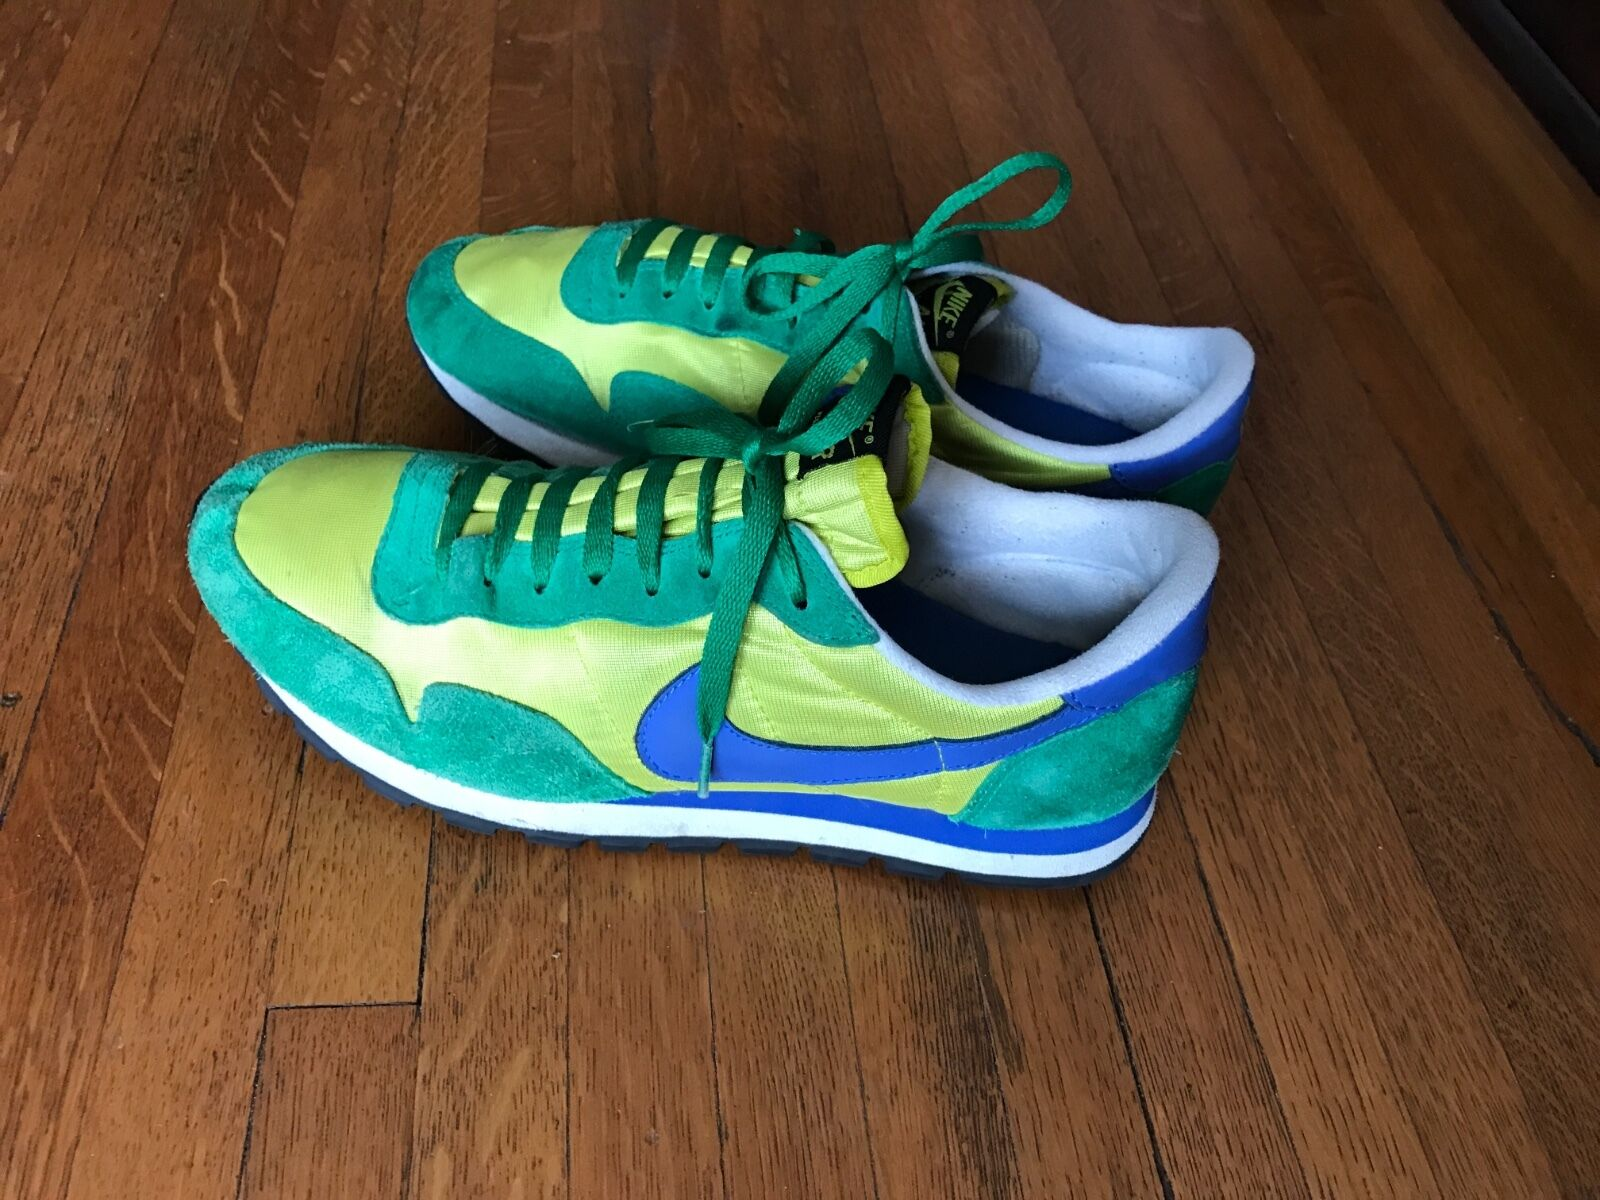 Brand discount NIKE Retro Mens Shoes 10.5 Green and Blue